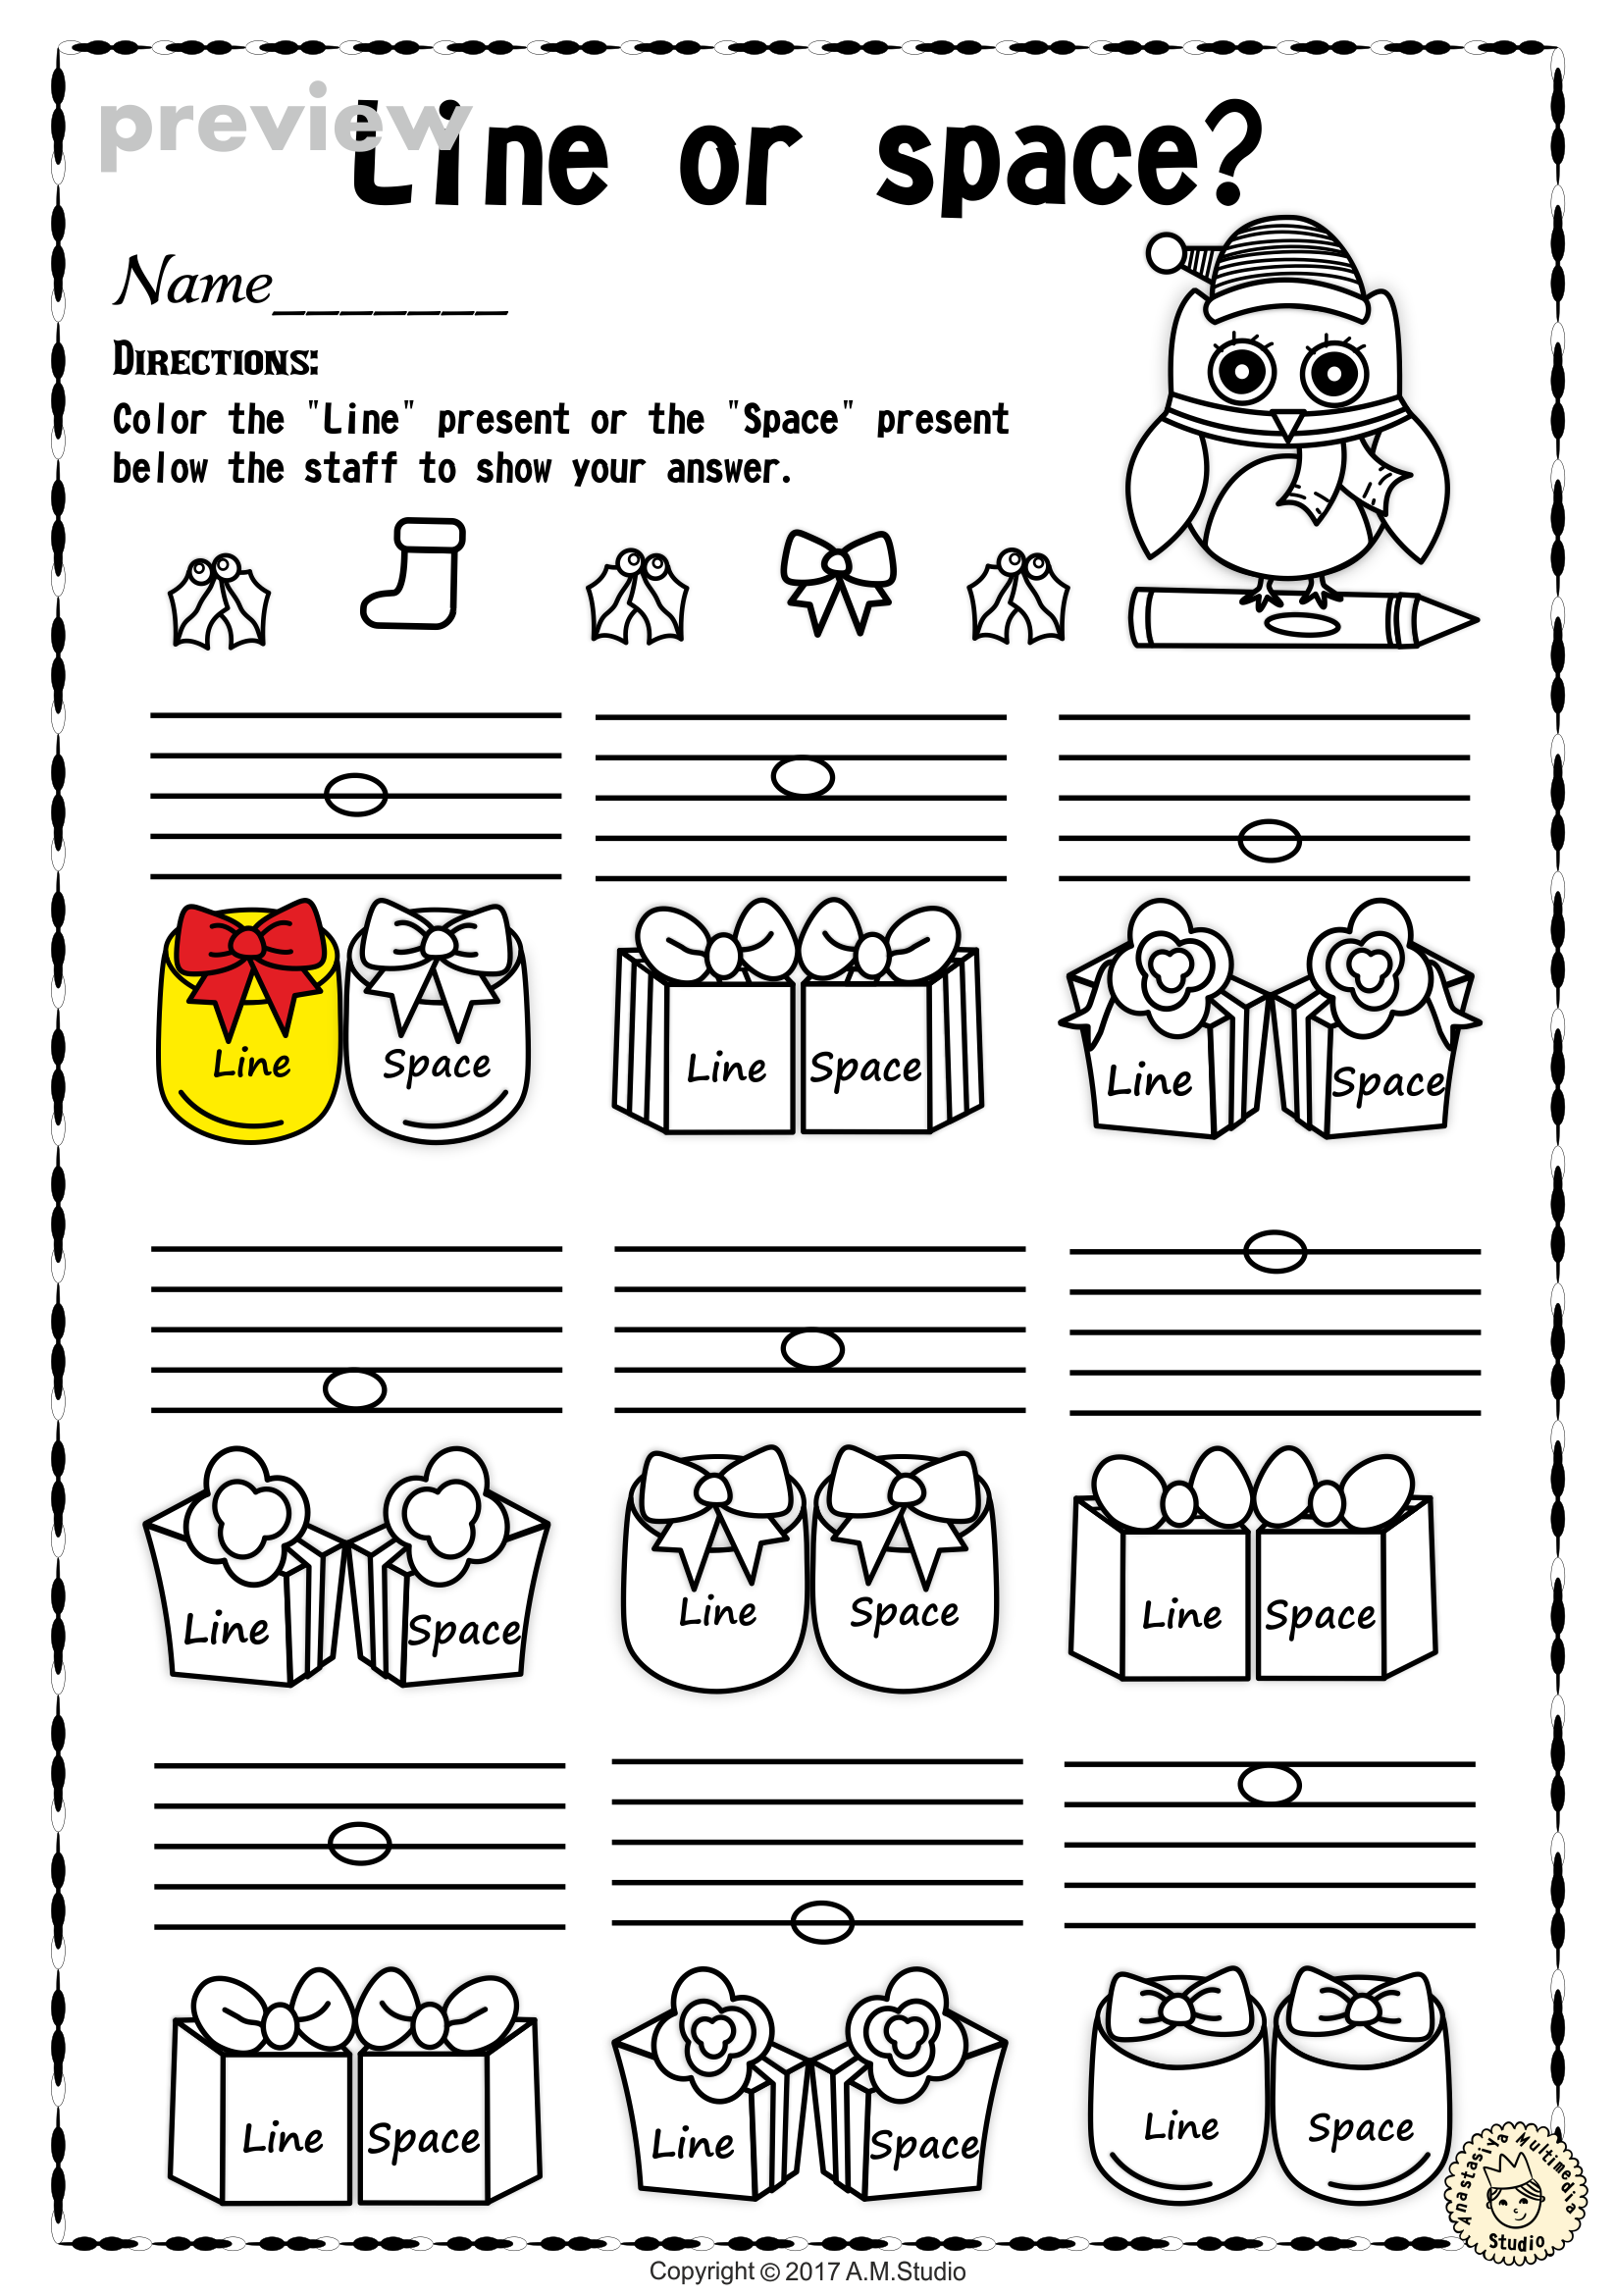 This Set Of 20 Music Worksheets Christmas Themed Is Designed To Help Your Students Practice Iden Christmas Music Worksheets Basic Music Theory Music Worksheets [ 2340 x 1646 Pixel ]